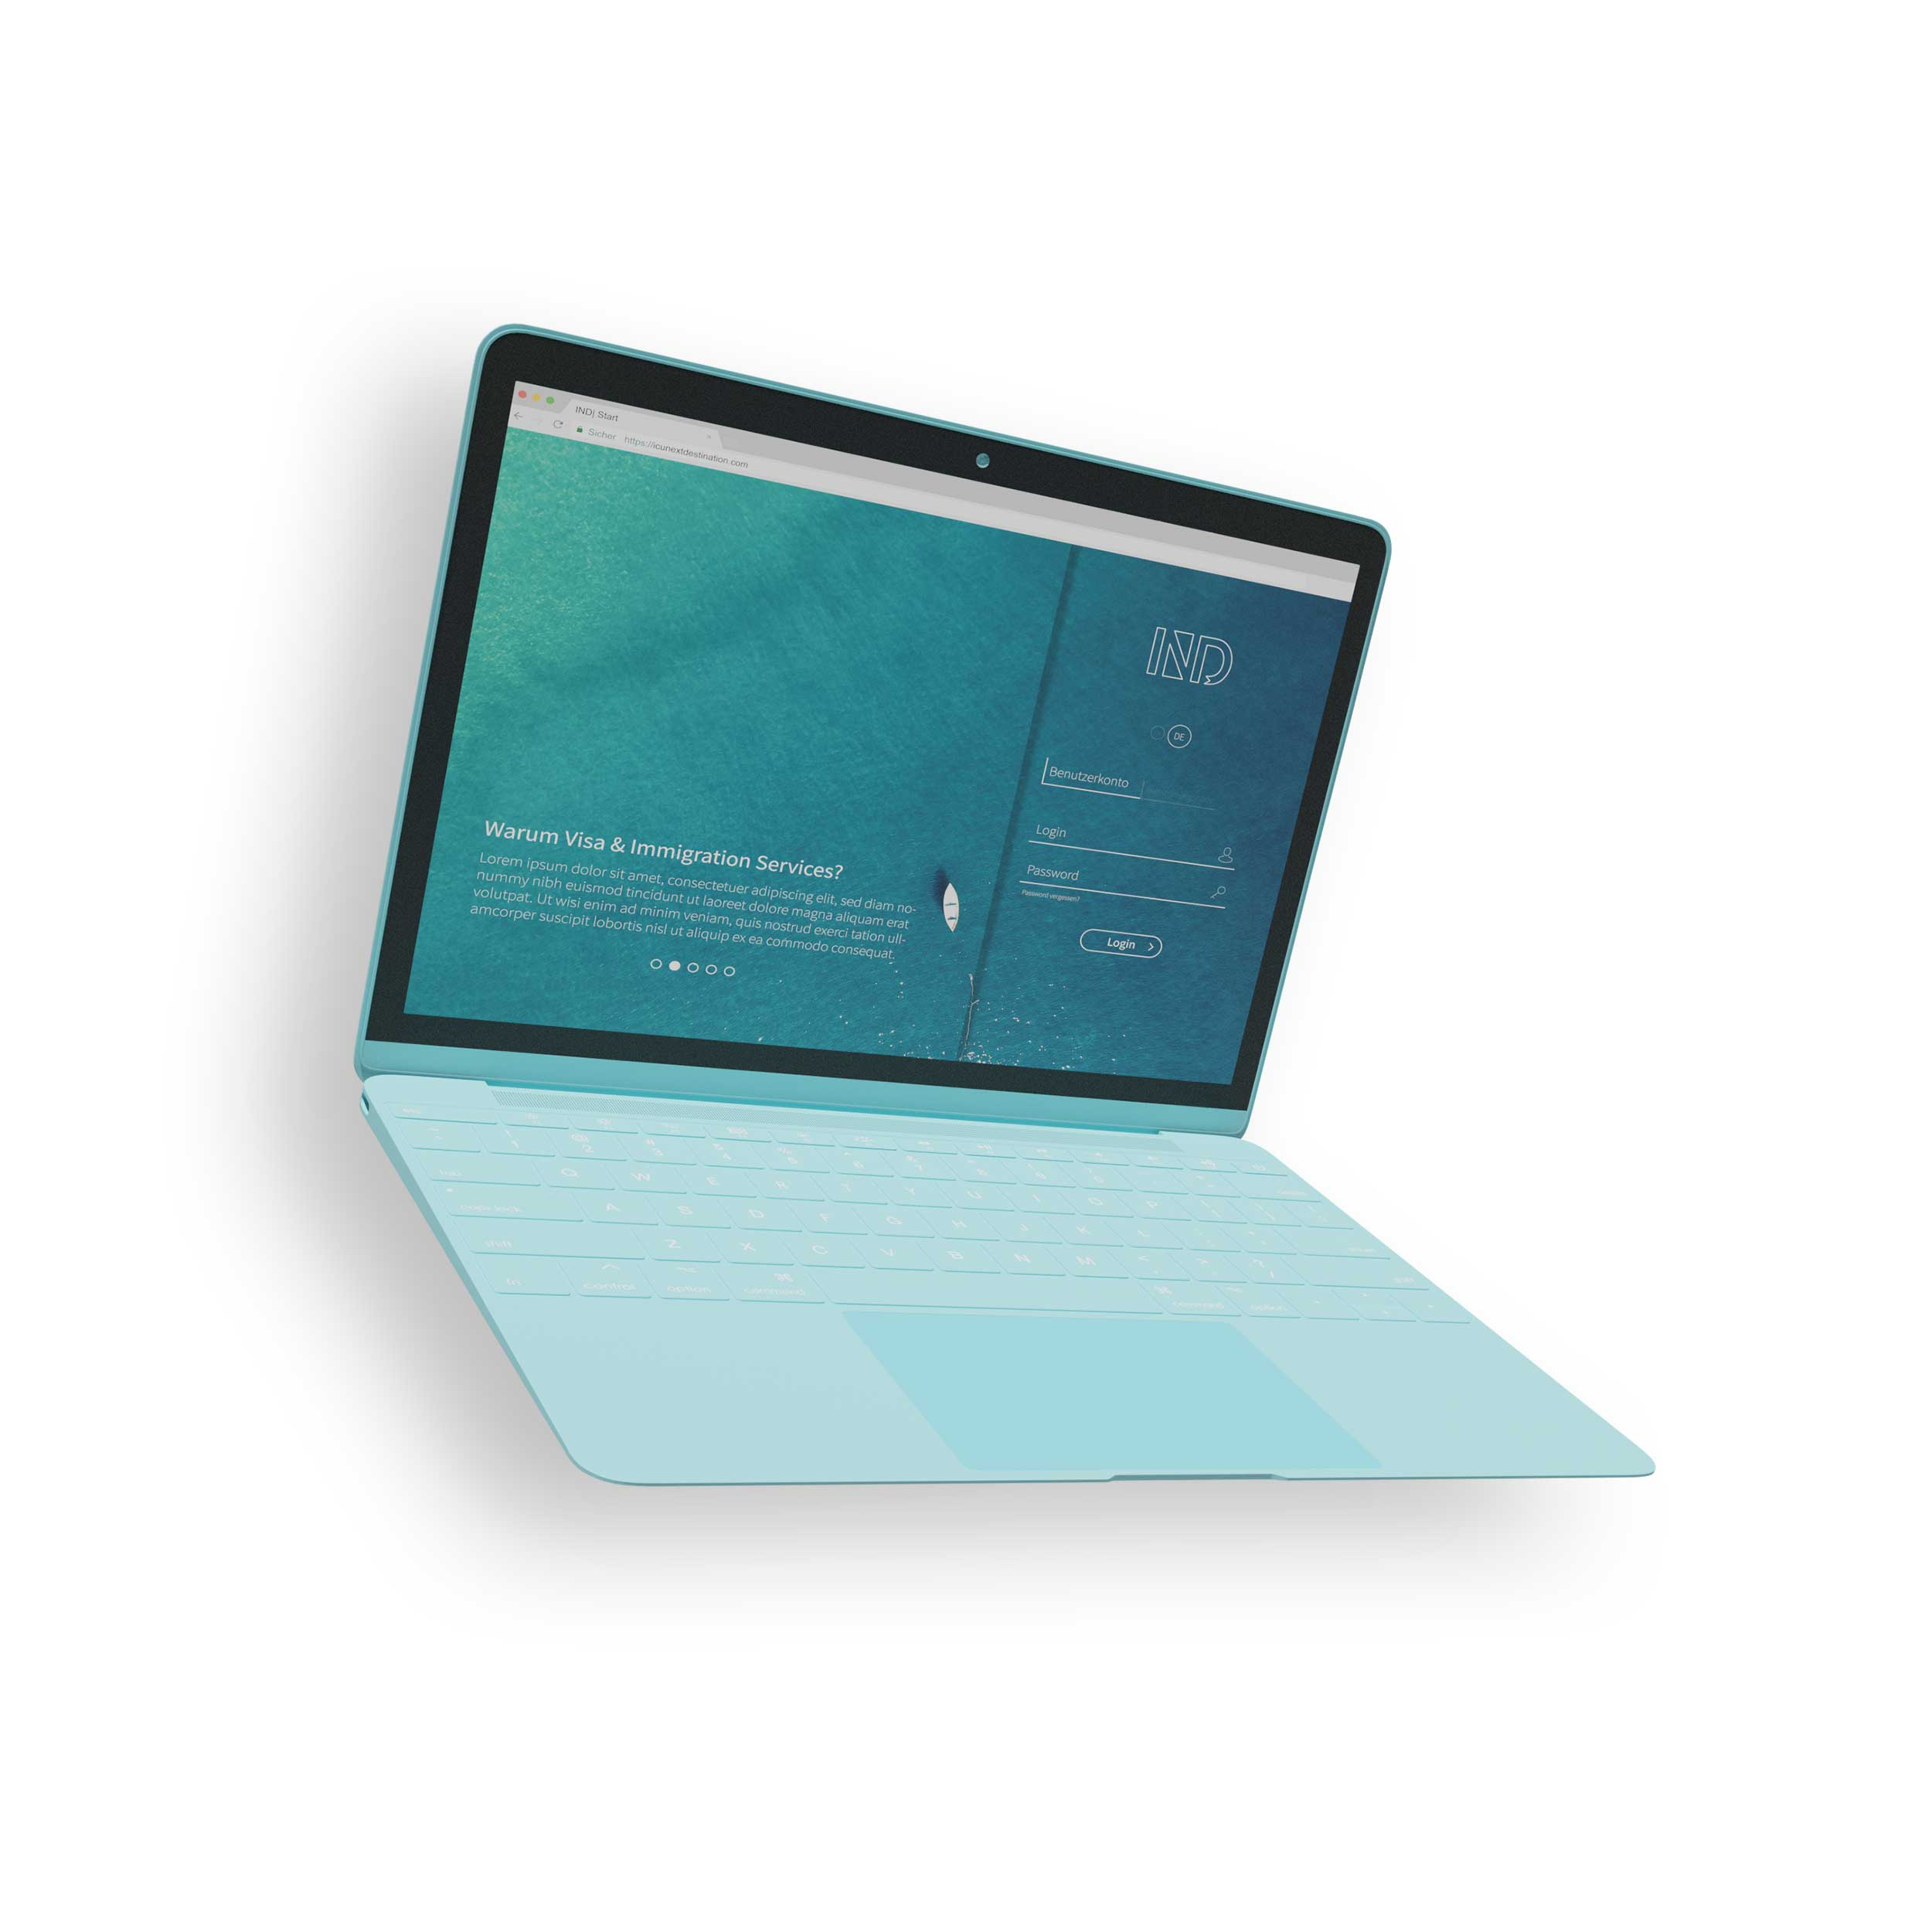 turquoise laptop with IND homepage